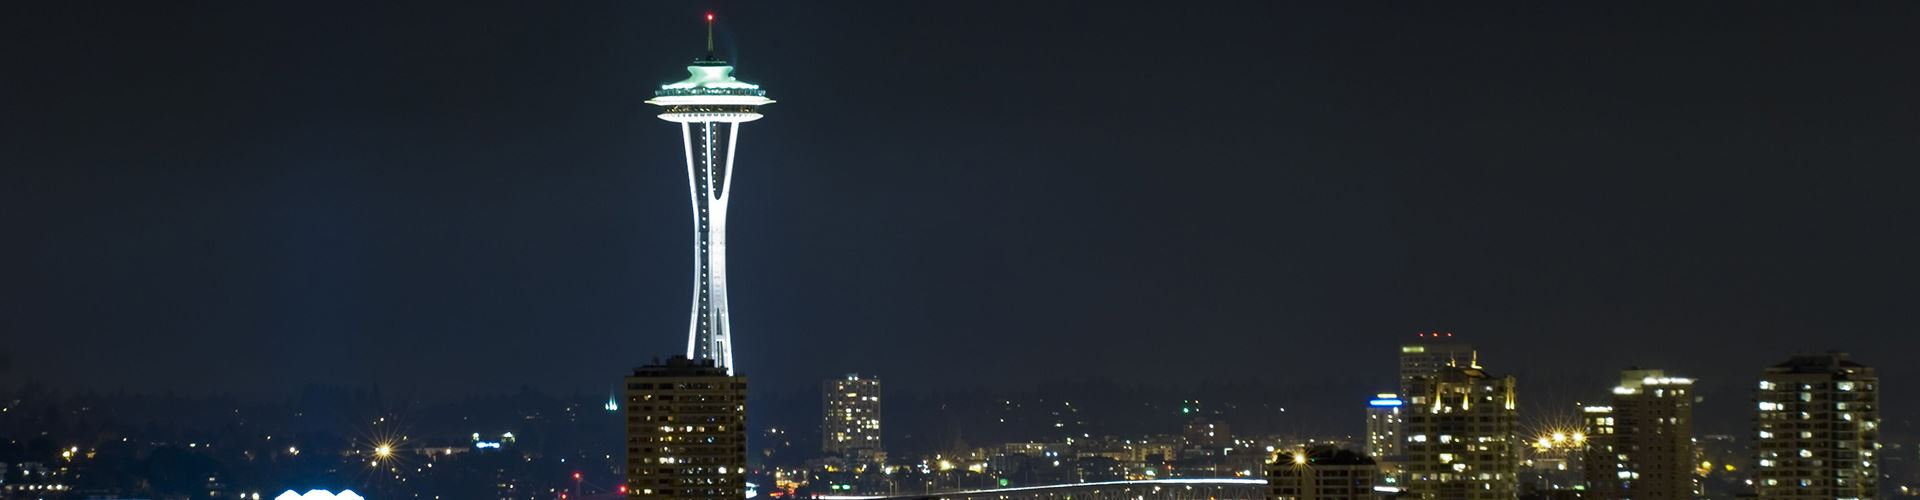 Seattle Space Needle at night